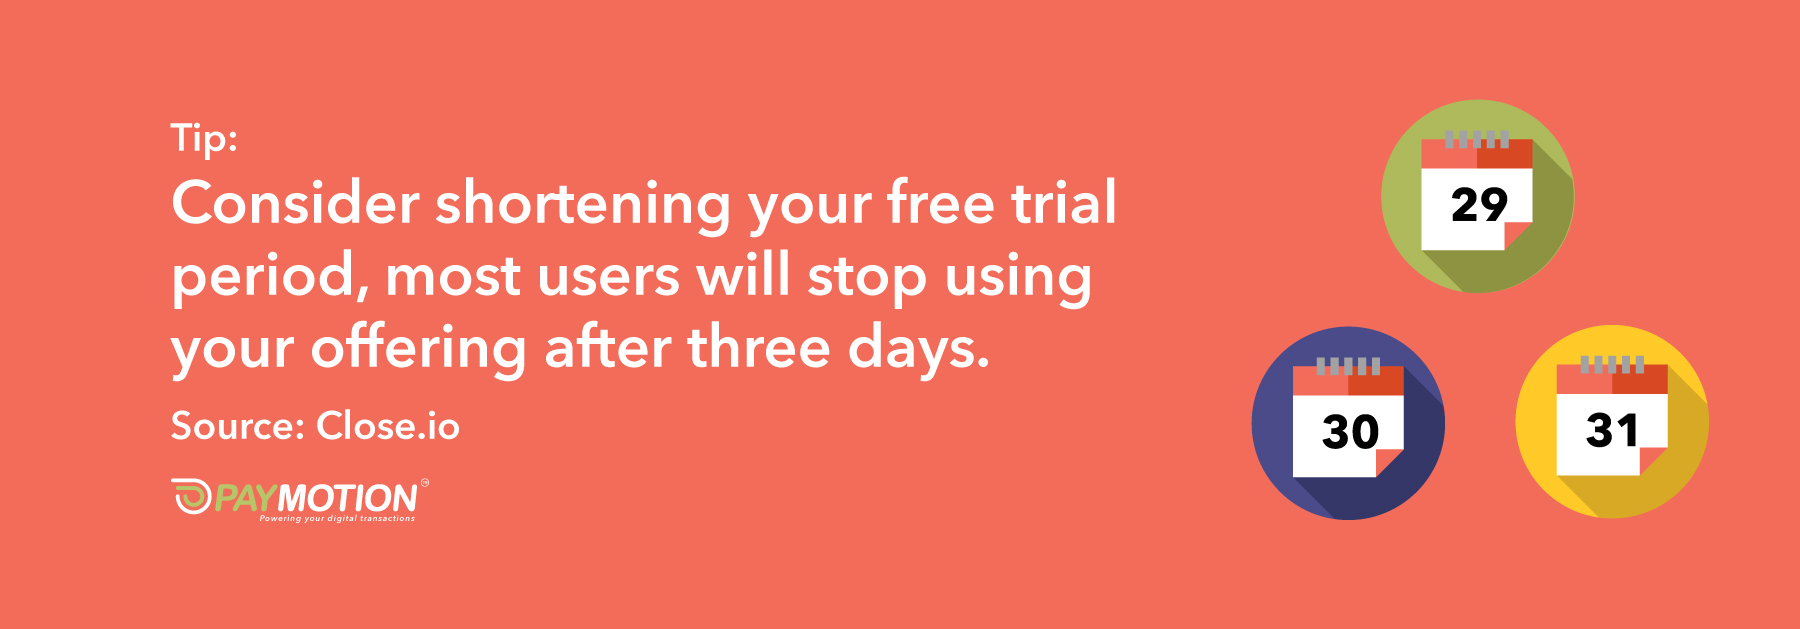 Consider shortening your free trial period, most users will stop using your offering after three days.